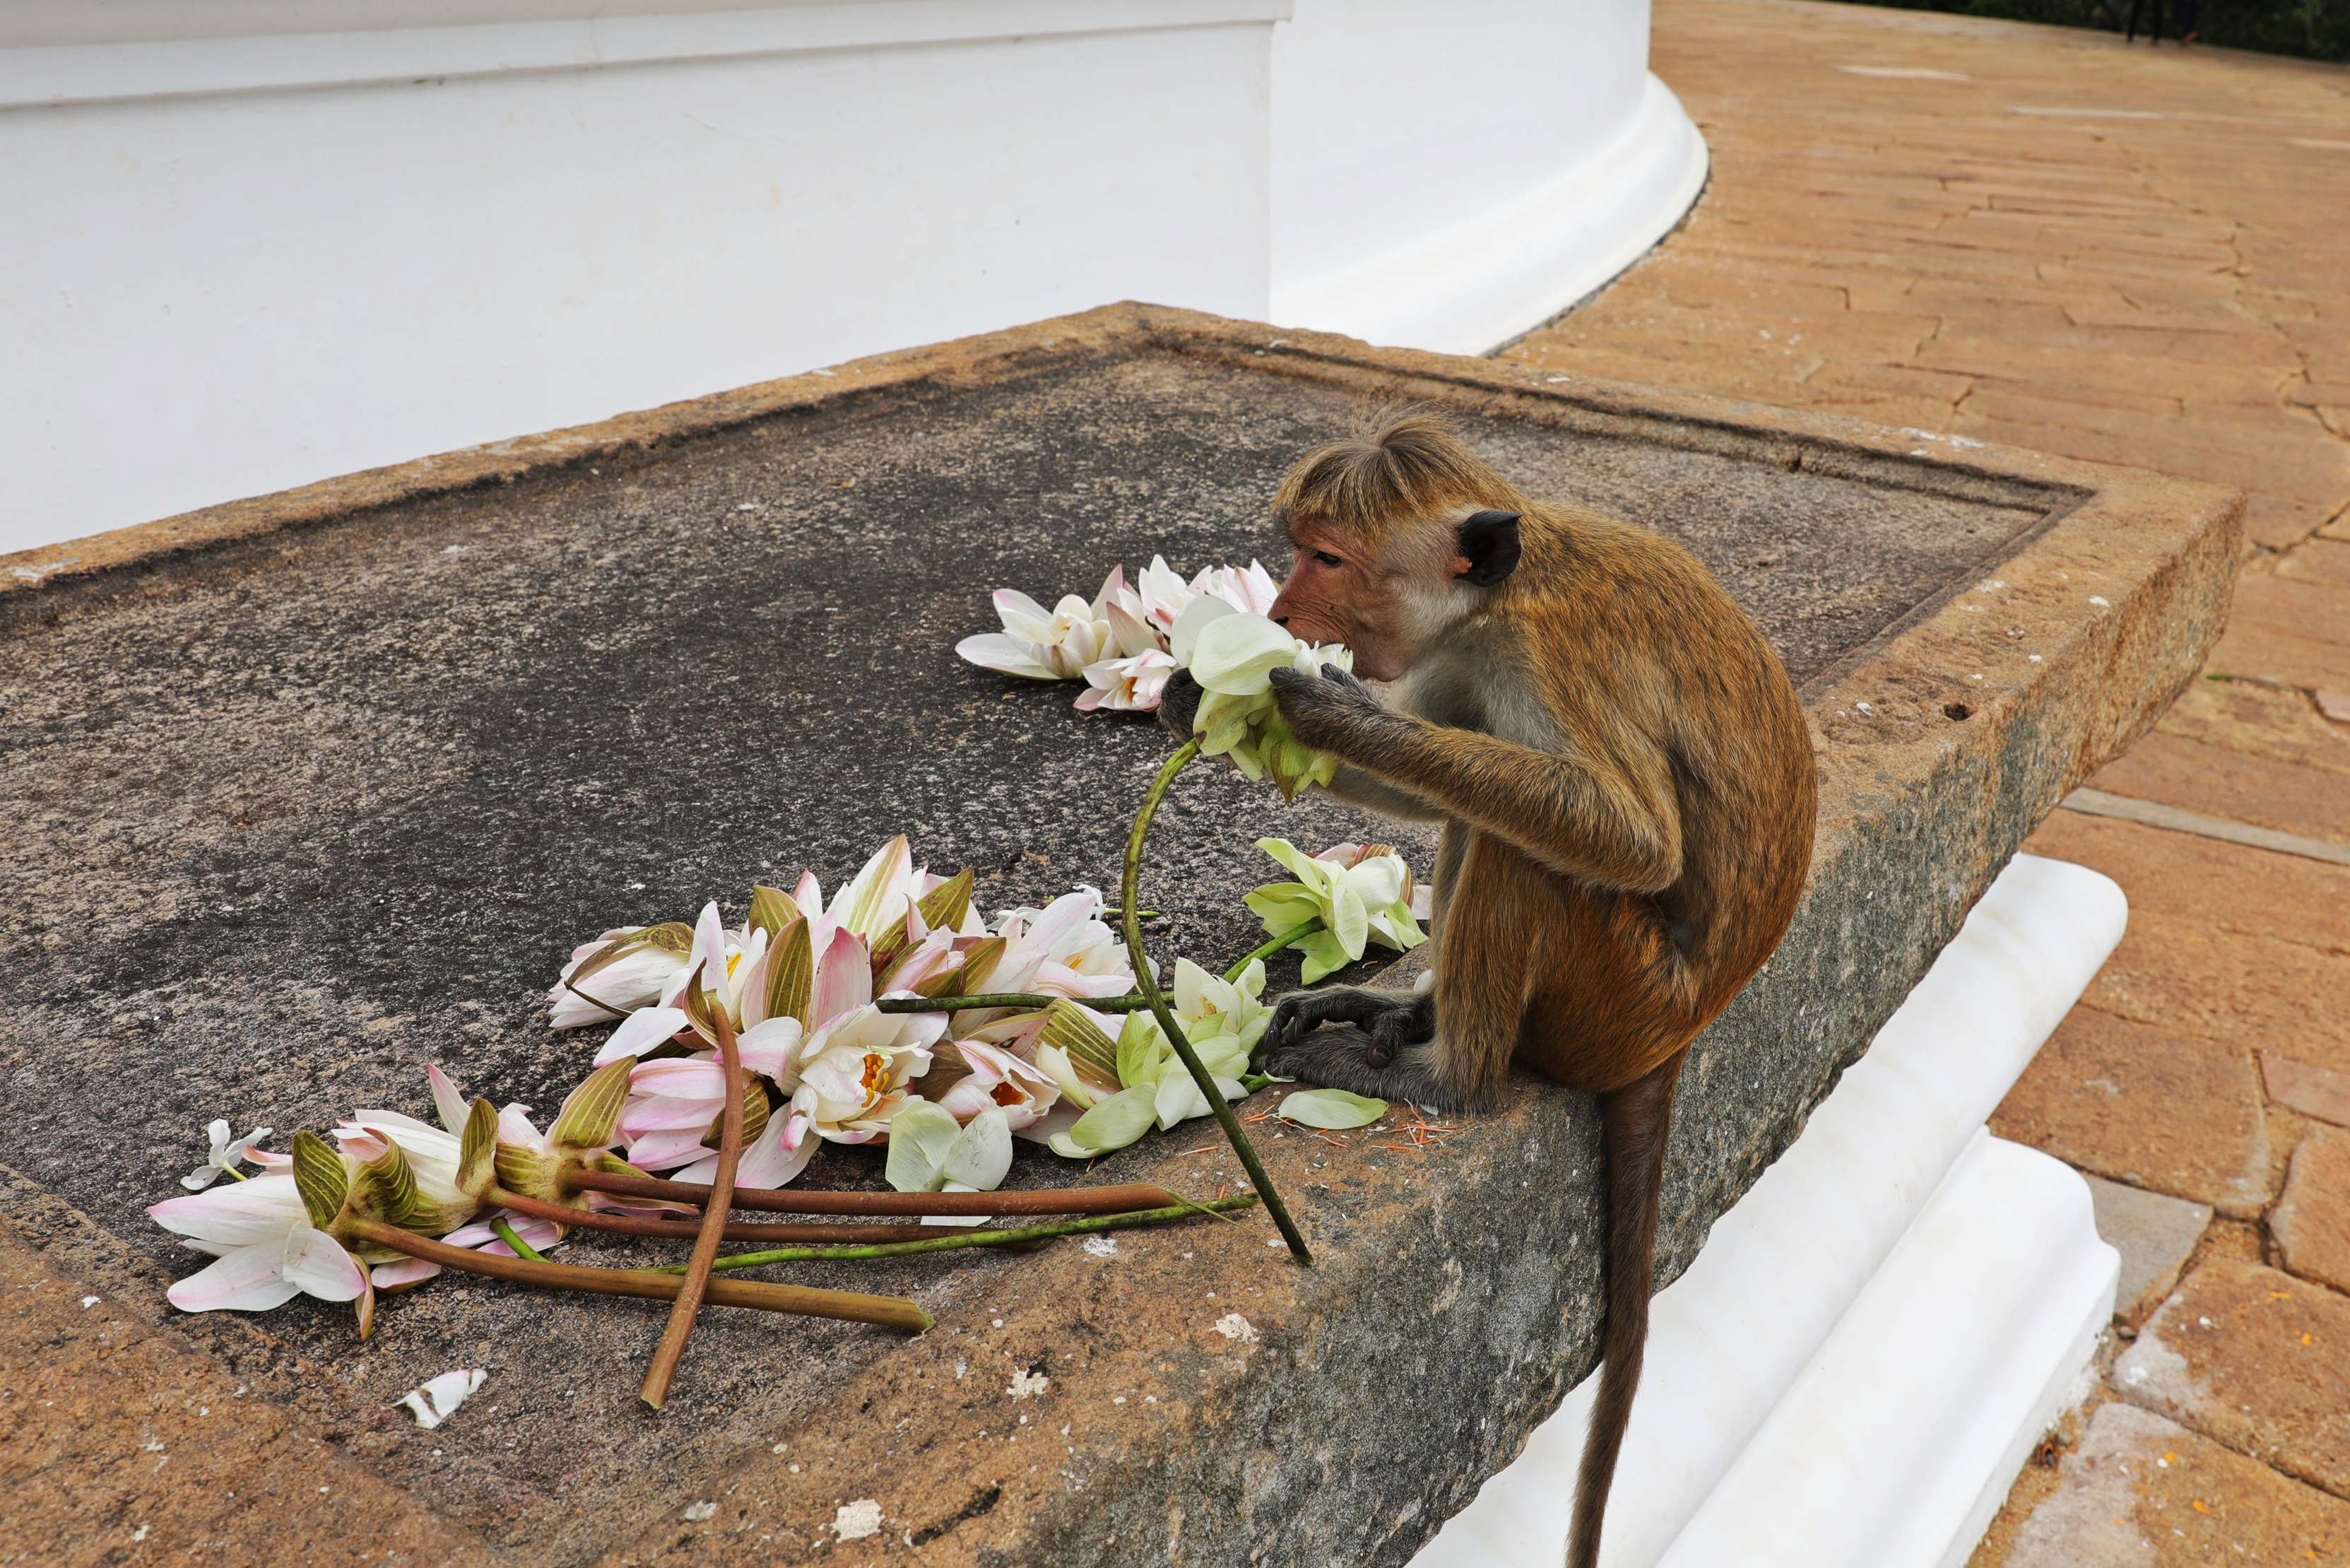 Toque macaque eating offerings at Mahaseya Dagoba, Mihintale